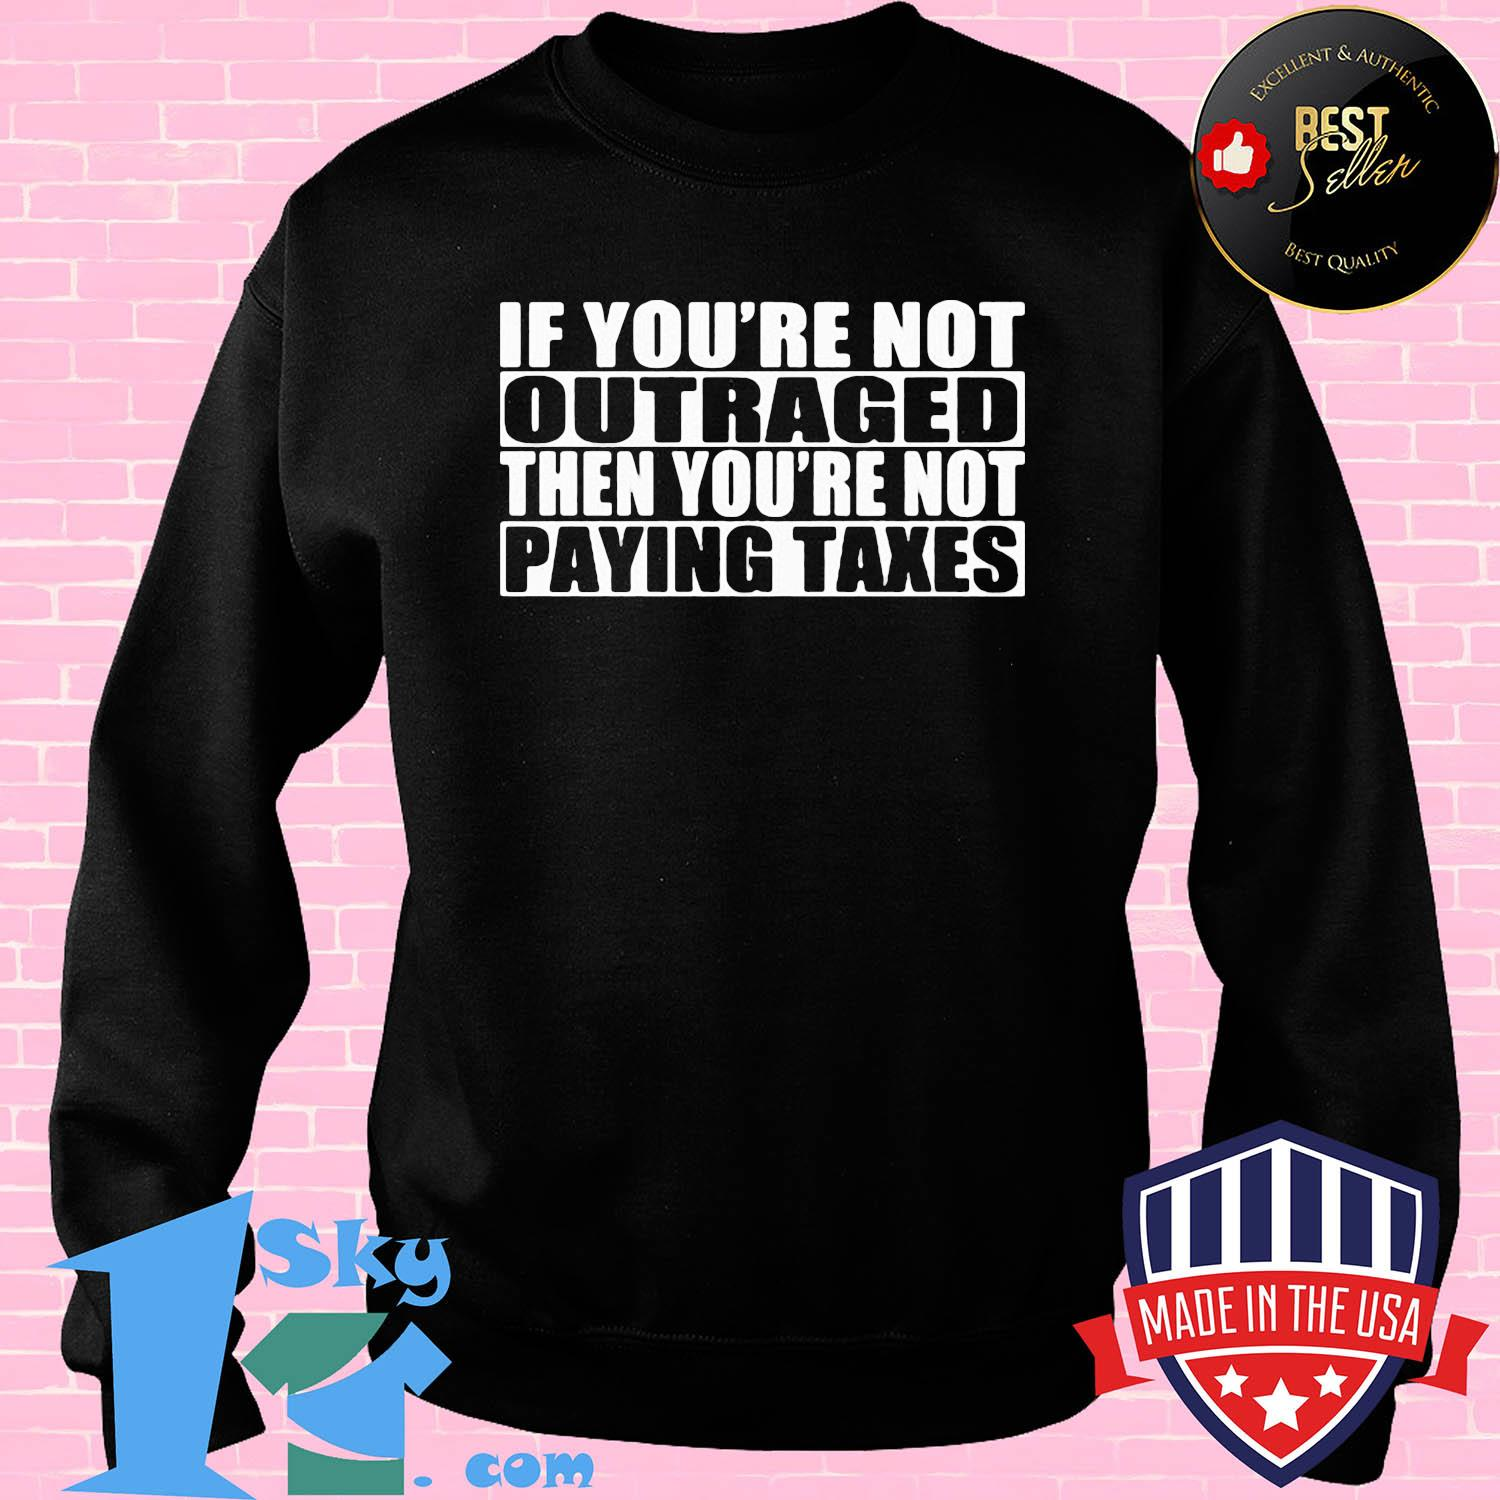 If you're not outraged then you're not paying taxes shirt